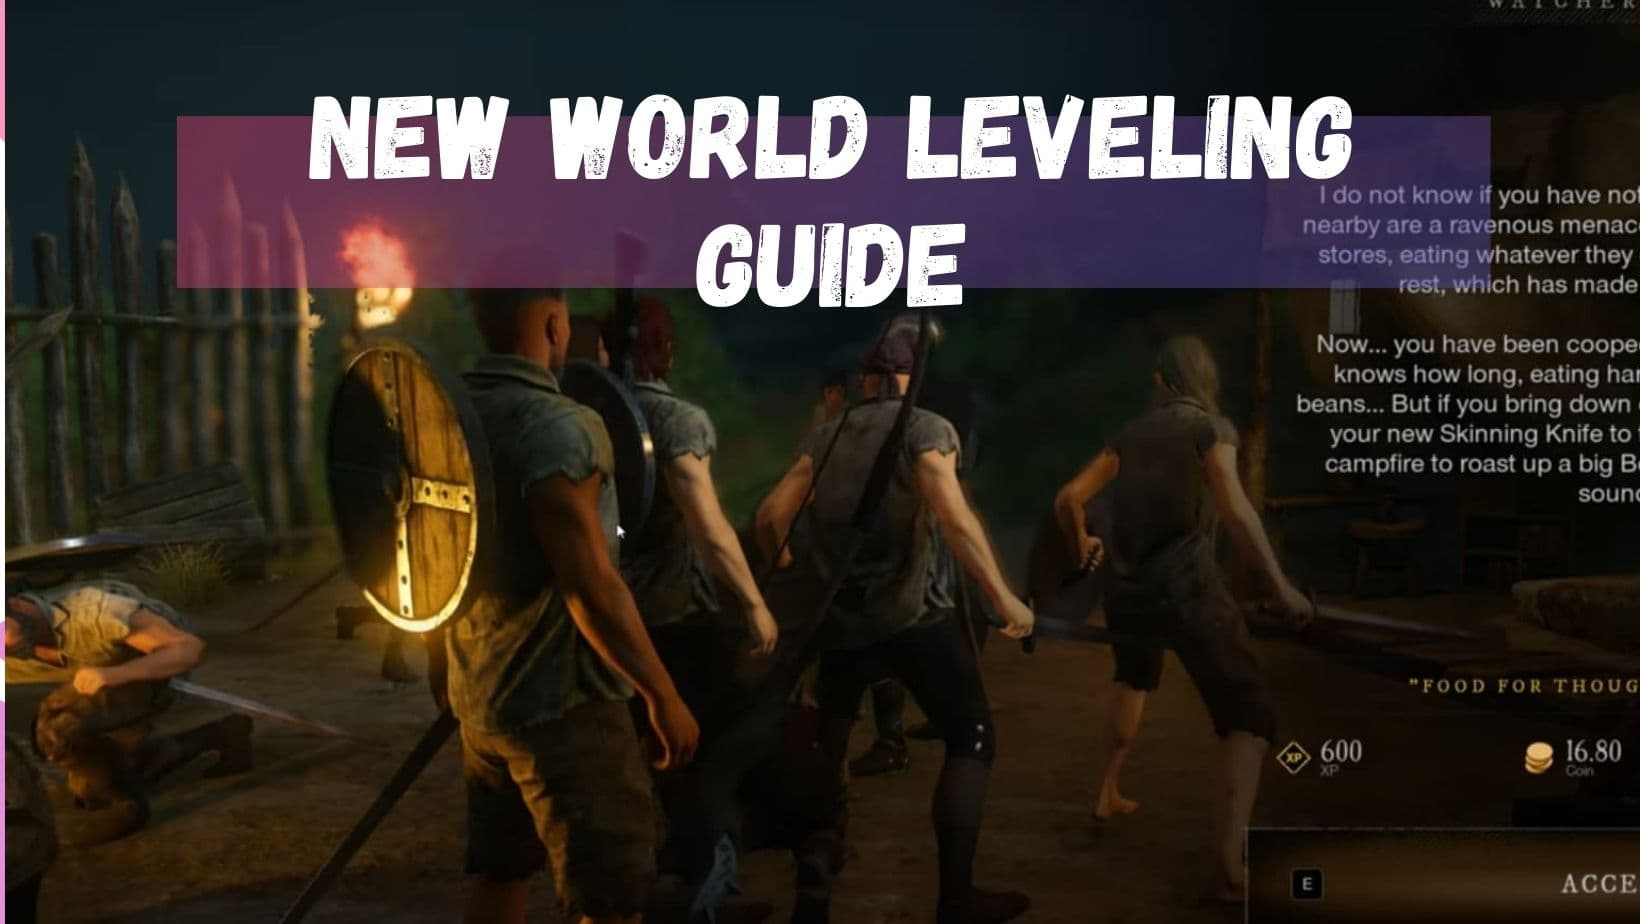 New World Leveling Guide